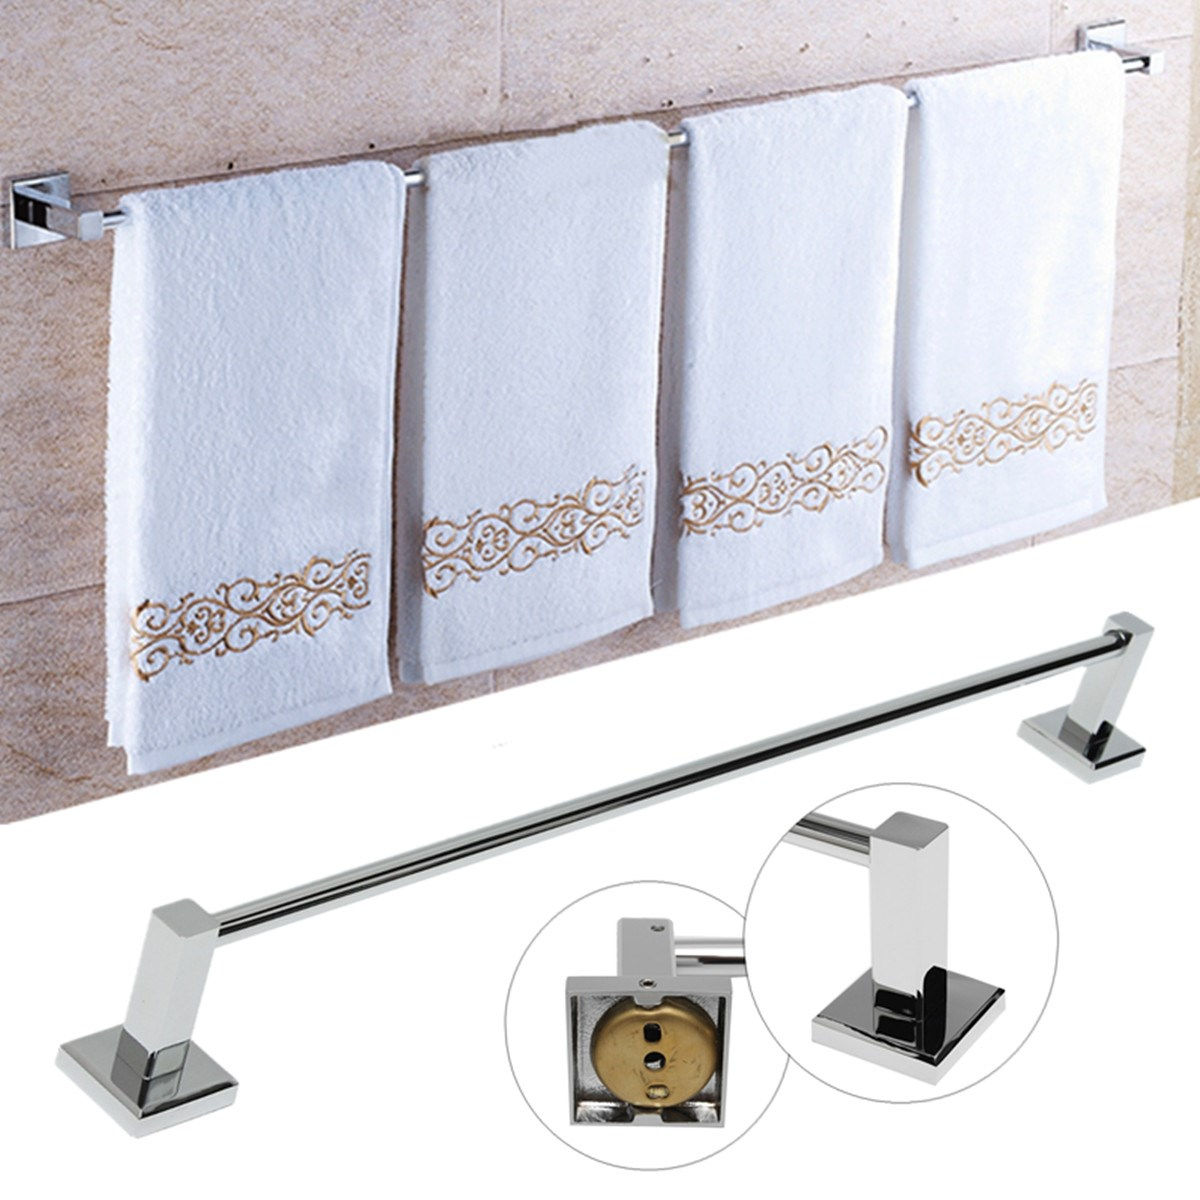 Wall Mounted Kitchen Rack Compare Prices On Wall Mounted Metal Kitchen Shelves Online